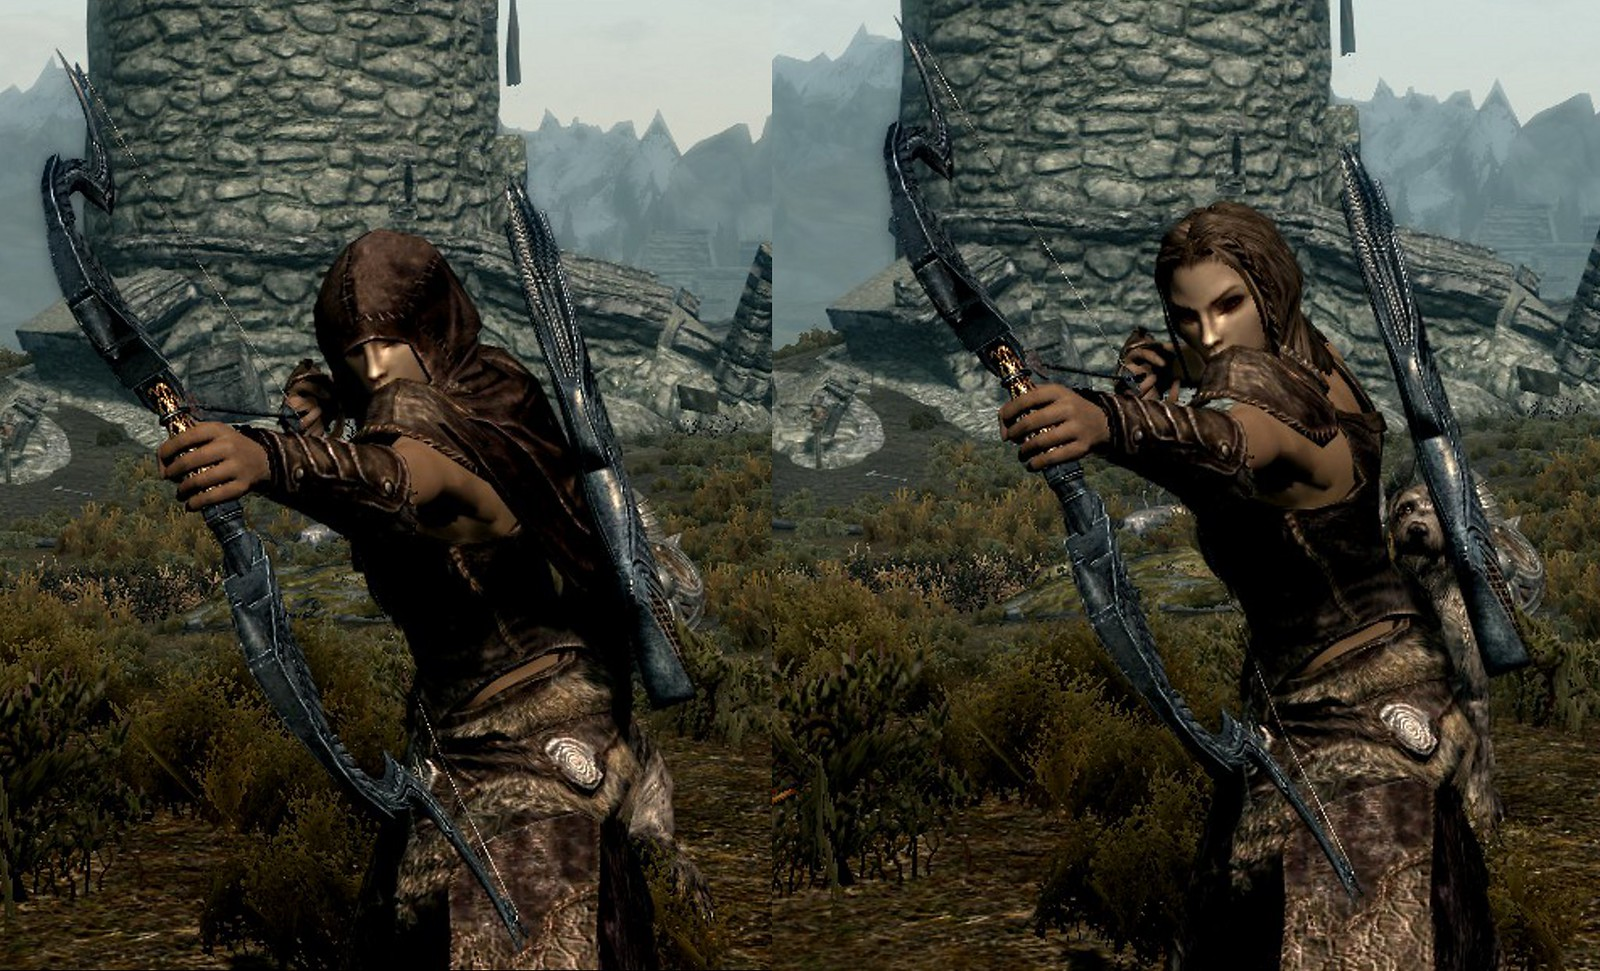 What is your archer's armor and why? | Skyrim Forums